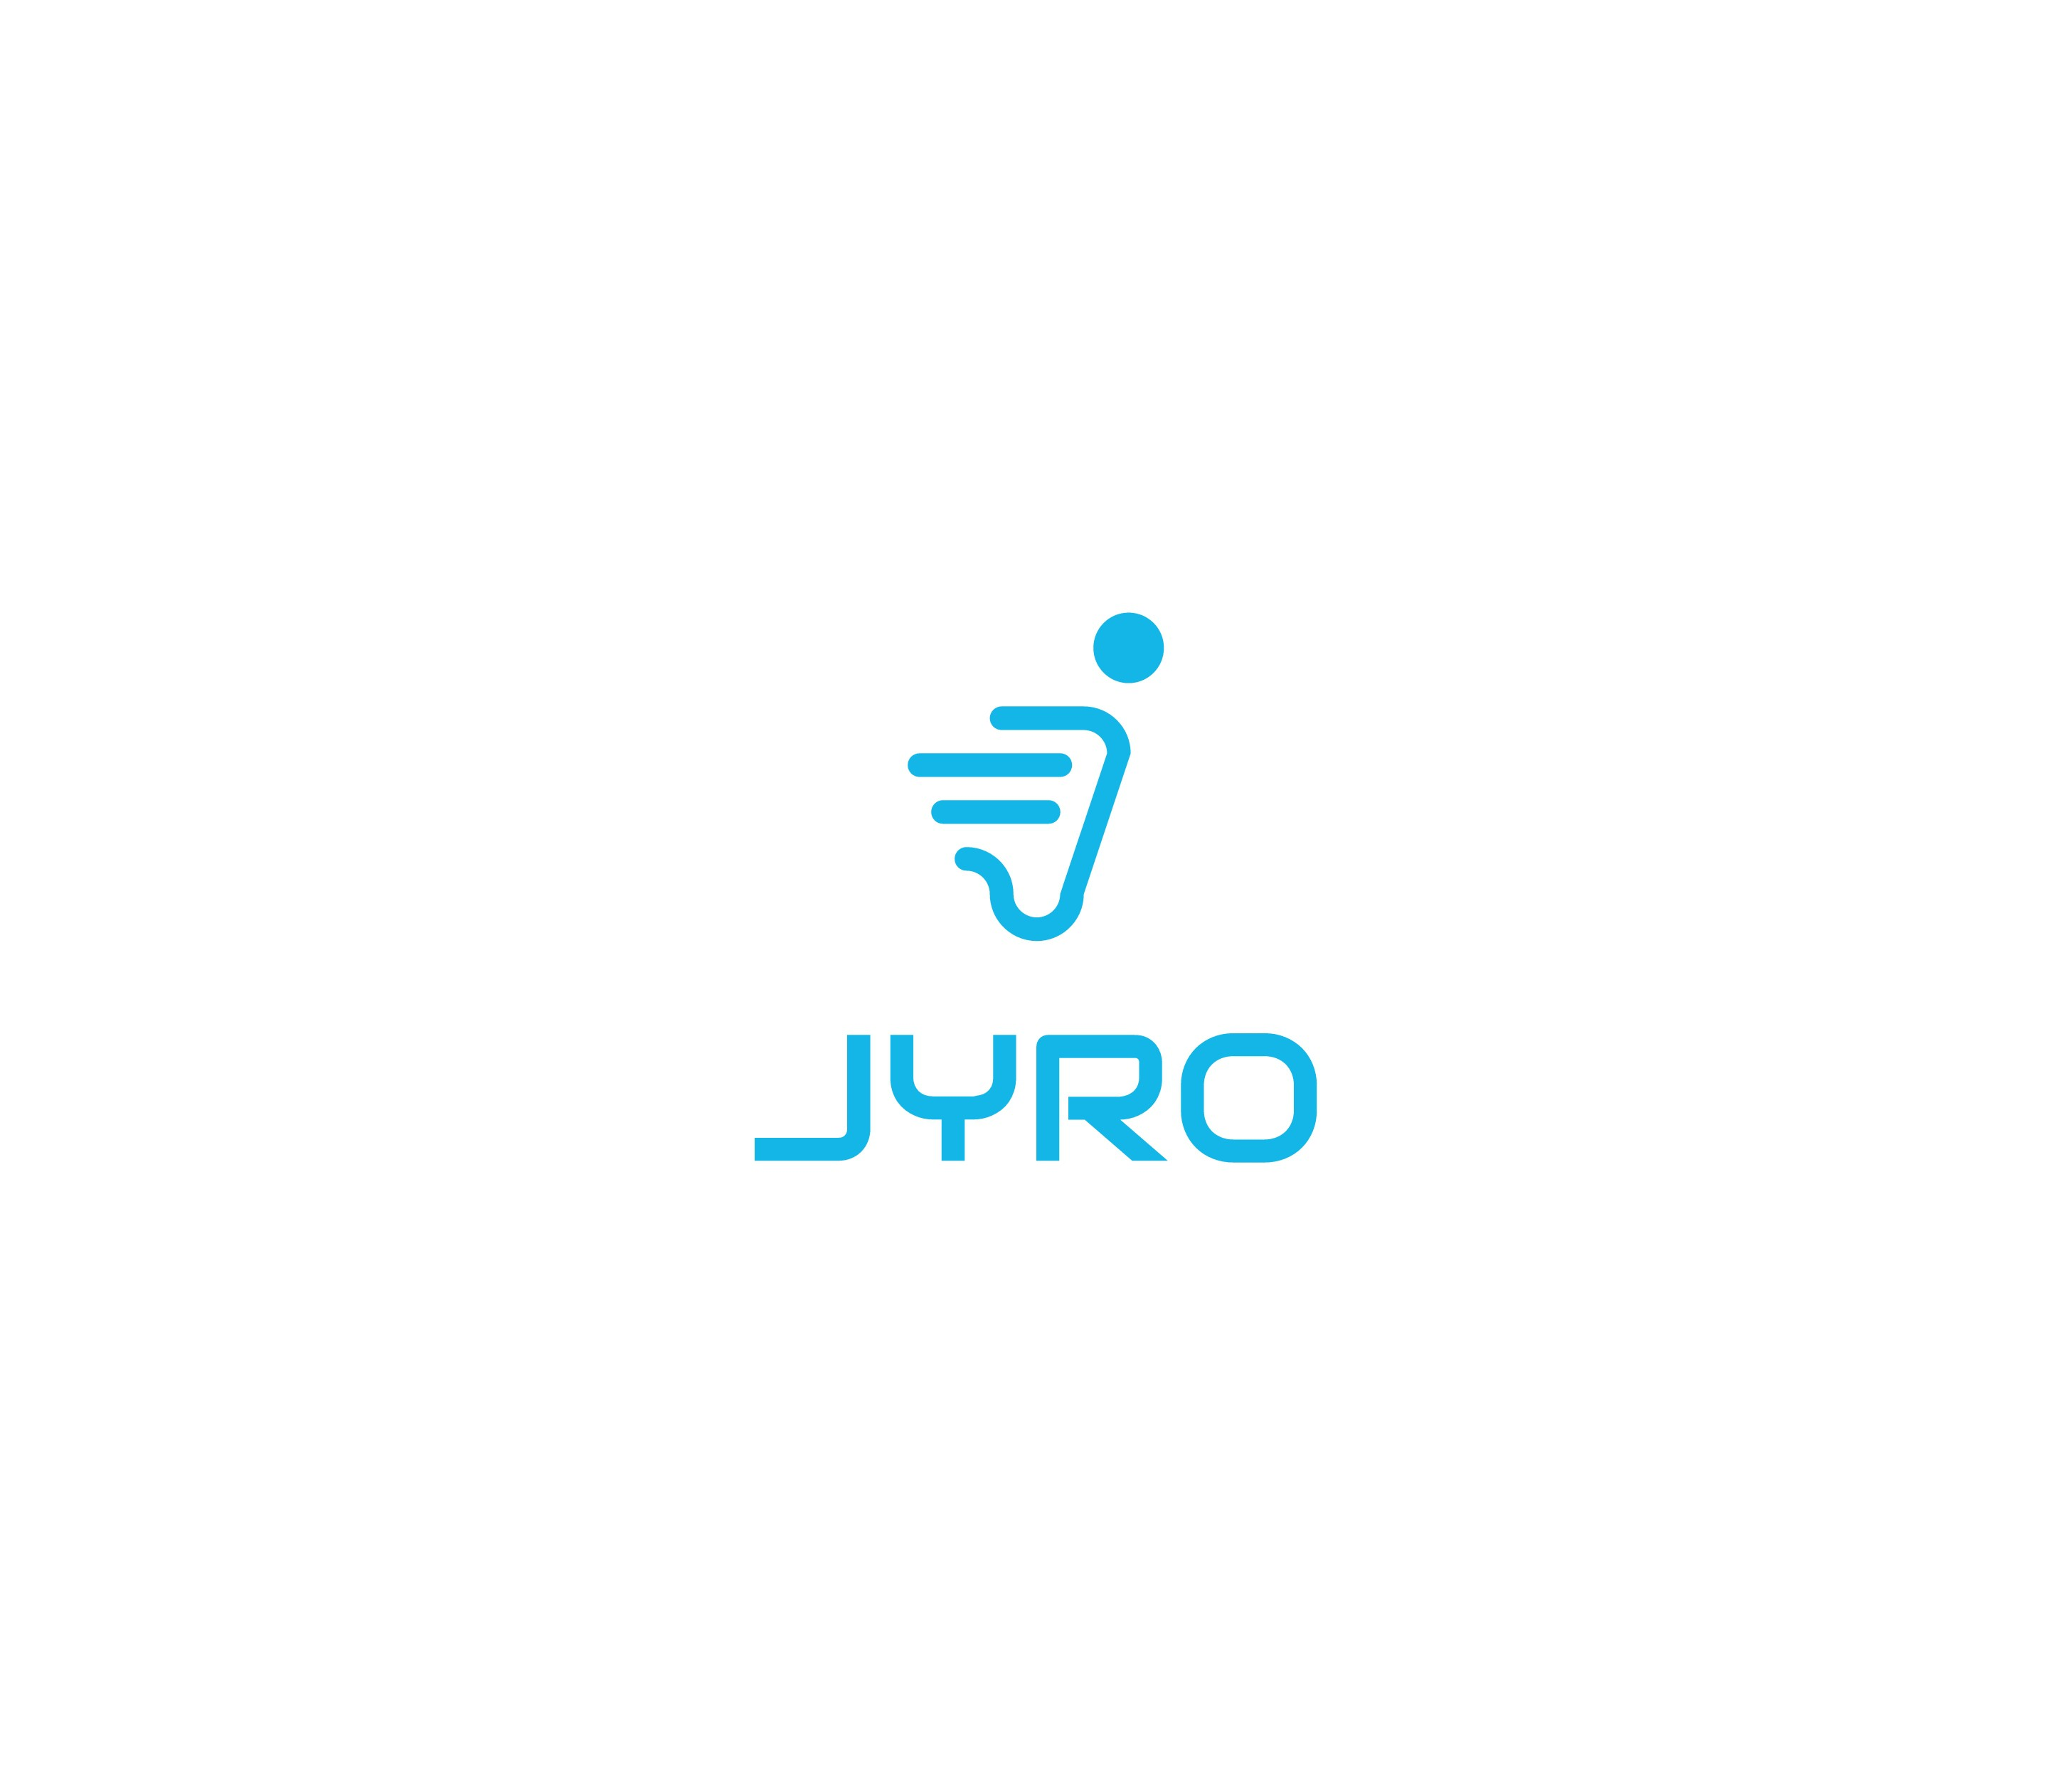 Create a cool logo for the new Jyro electronic scooter